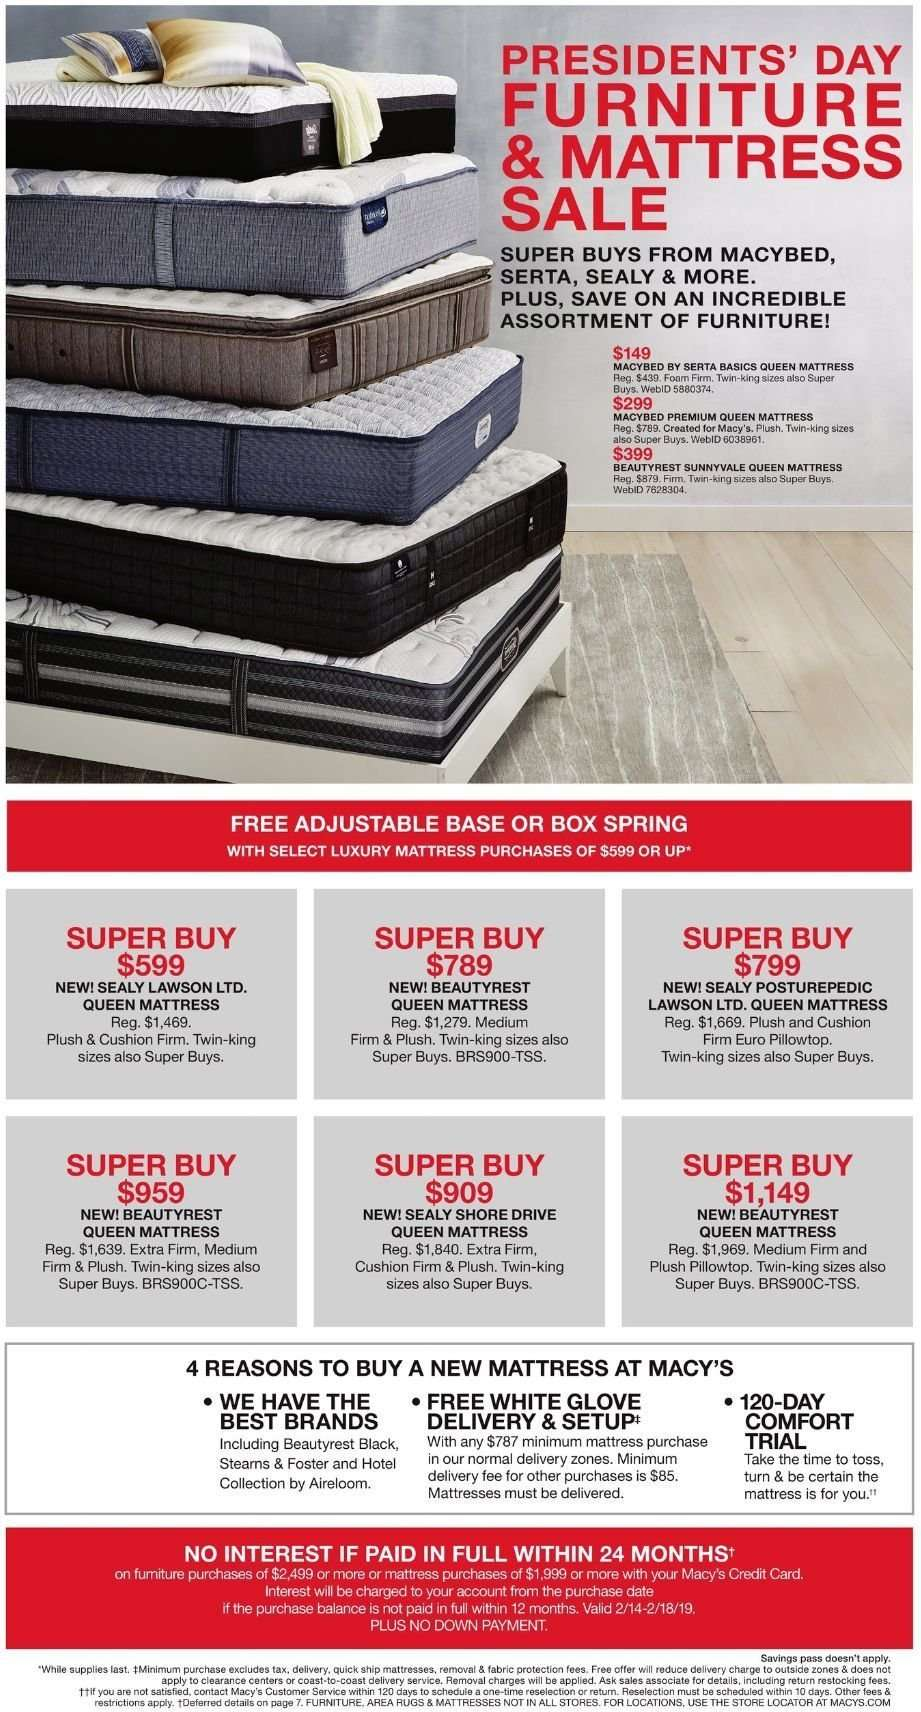 Current Macy's flyer 02.15.2019   02.18.2019 | Weekly ads.us